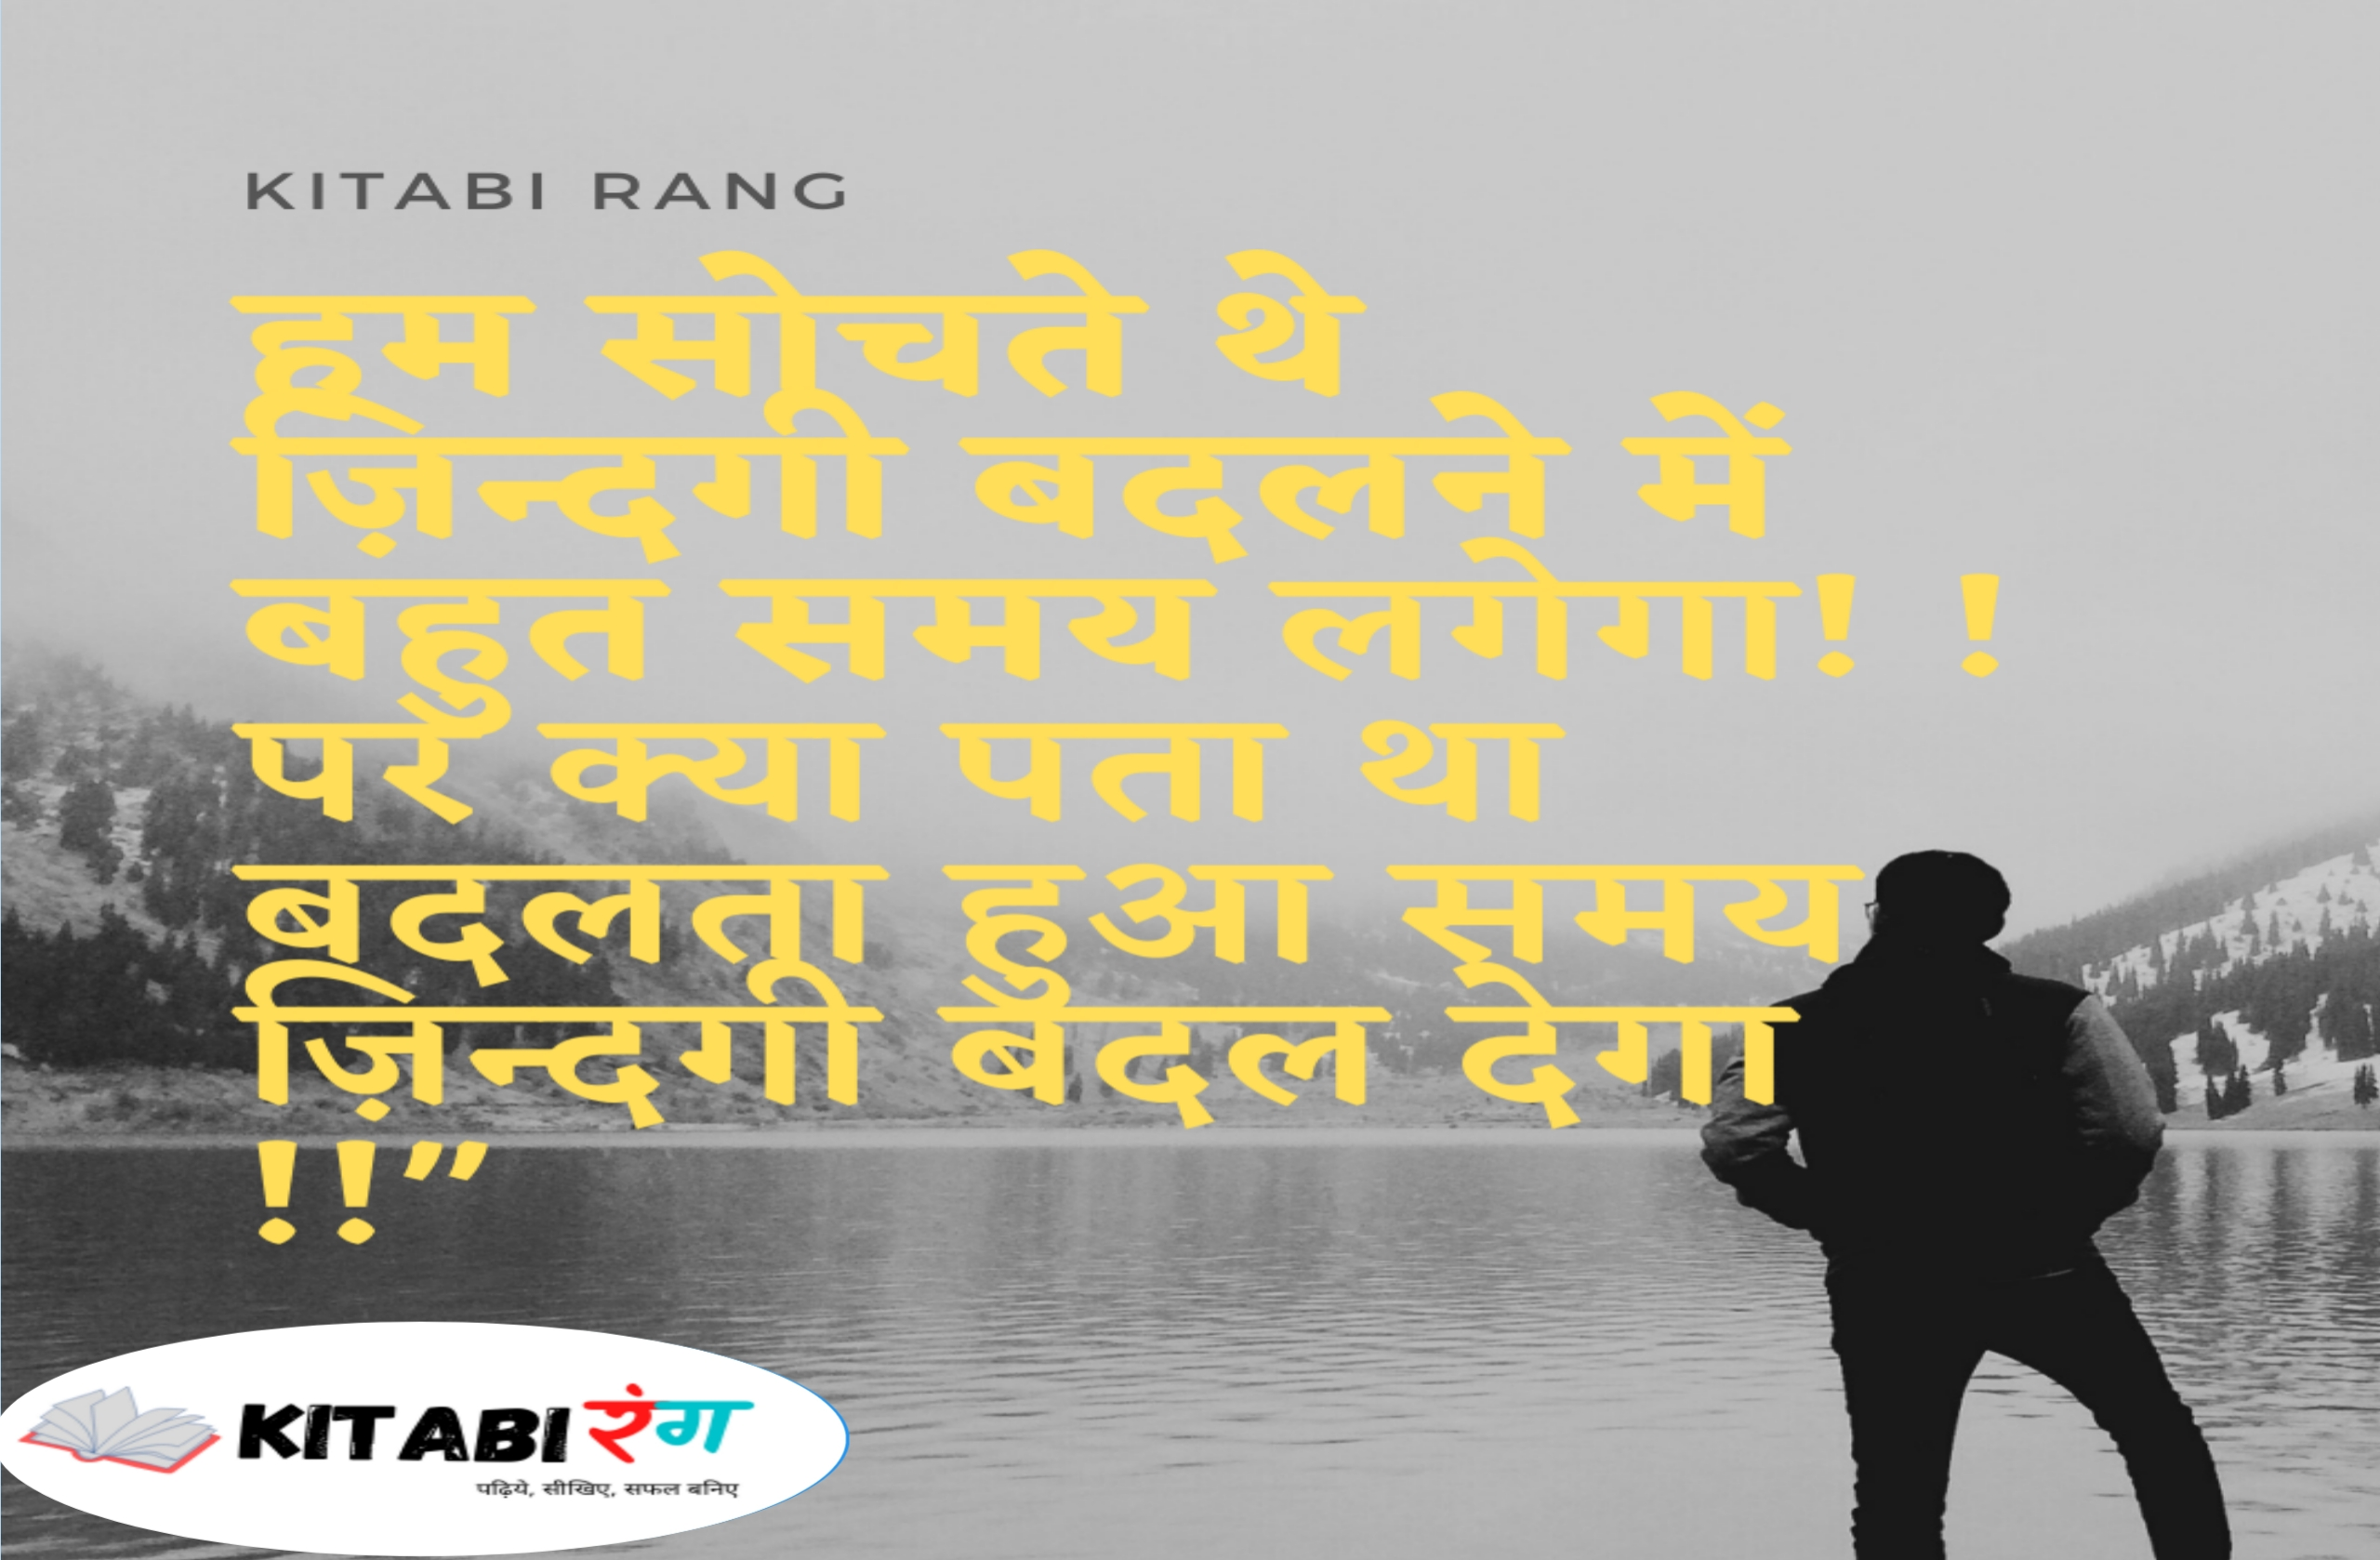 Top 10 Life Quotes in Hindi | Life Thoughts in Hindi 2021